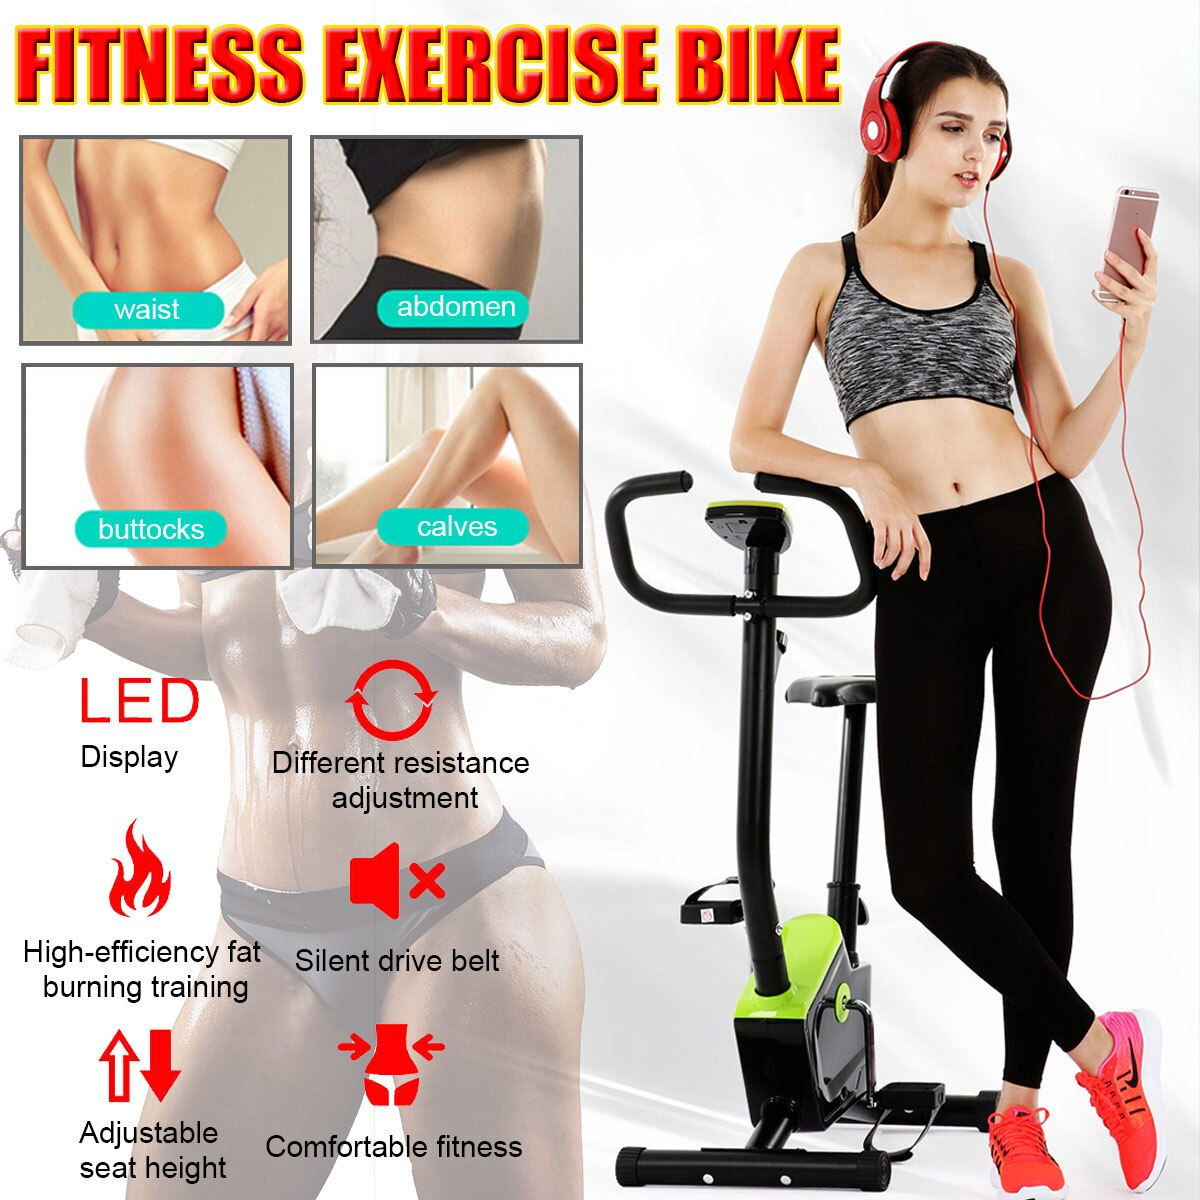 Indoor Cardio Exercise Bike Home Trainer Cyclette Fitness Workout LED Display Exercise Machine Cycling Trainer Bearing 120 KG